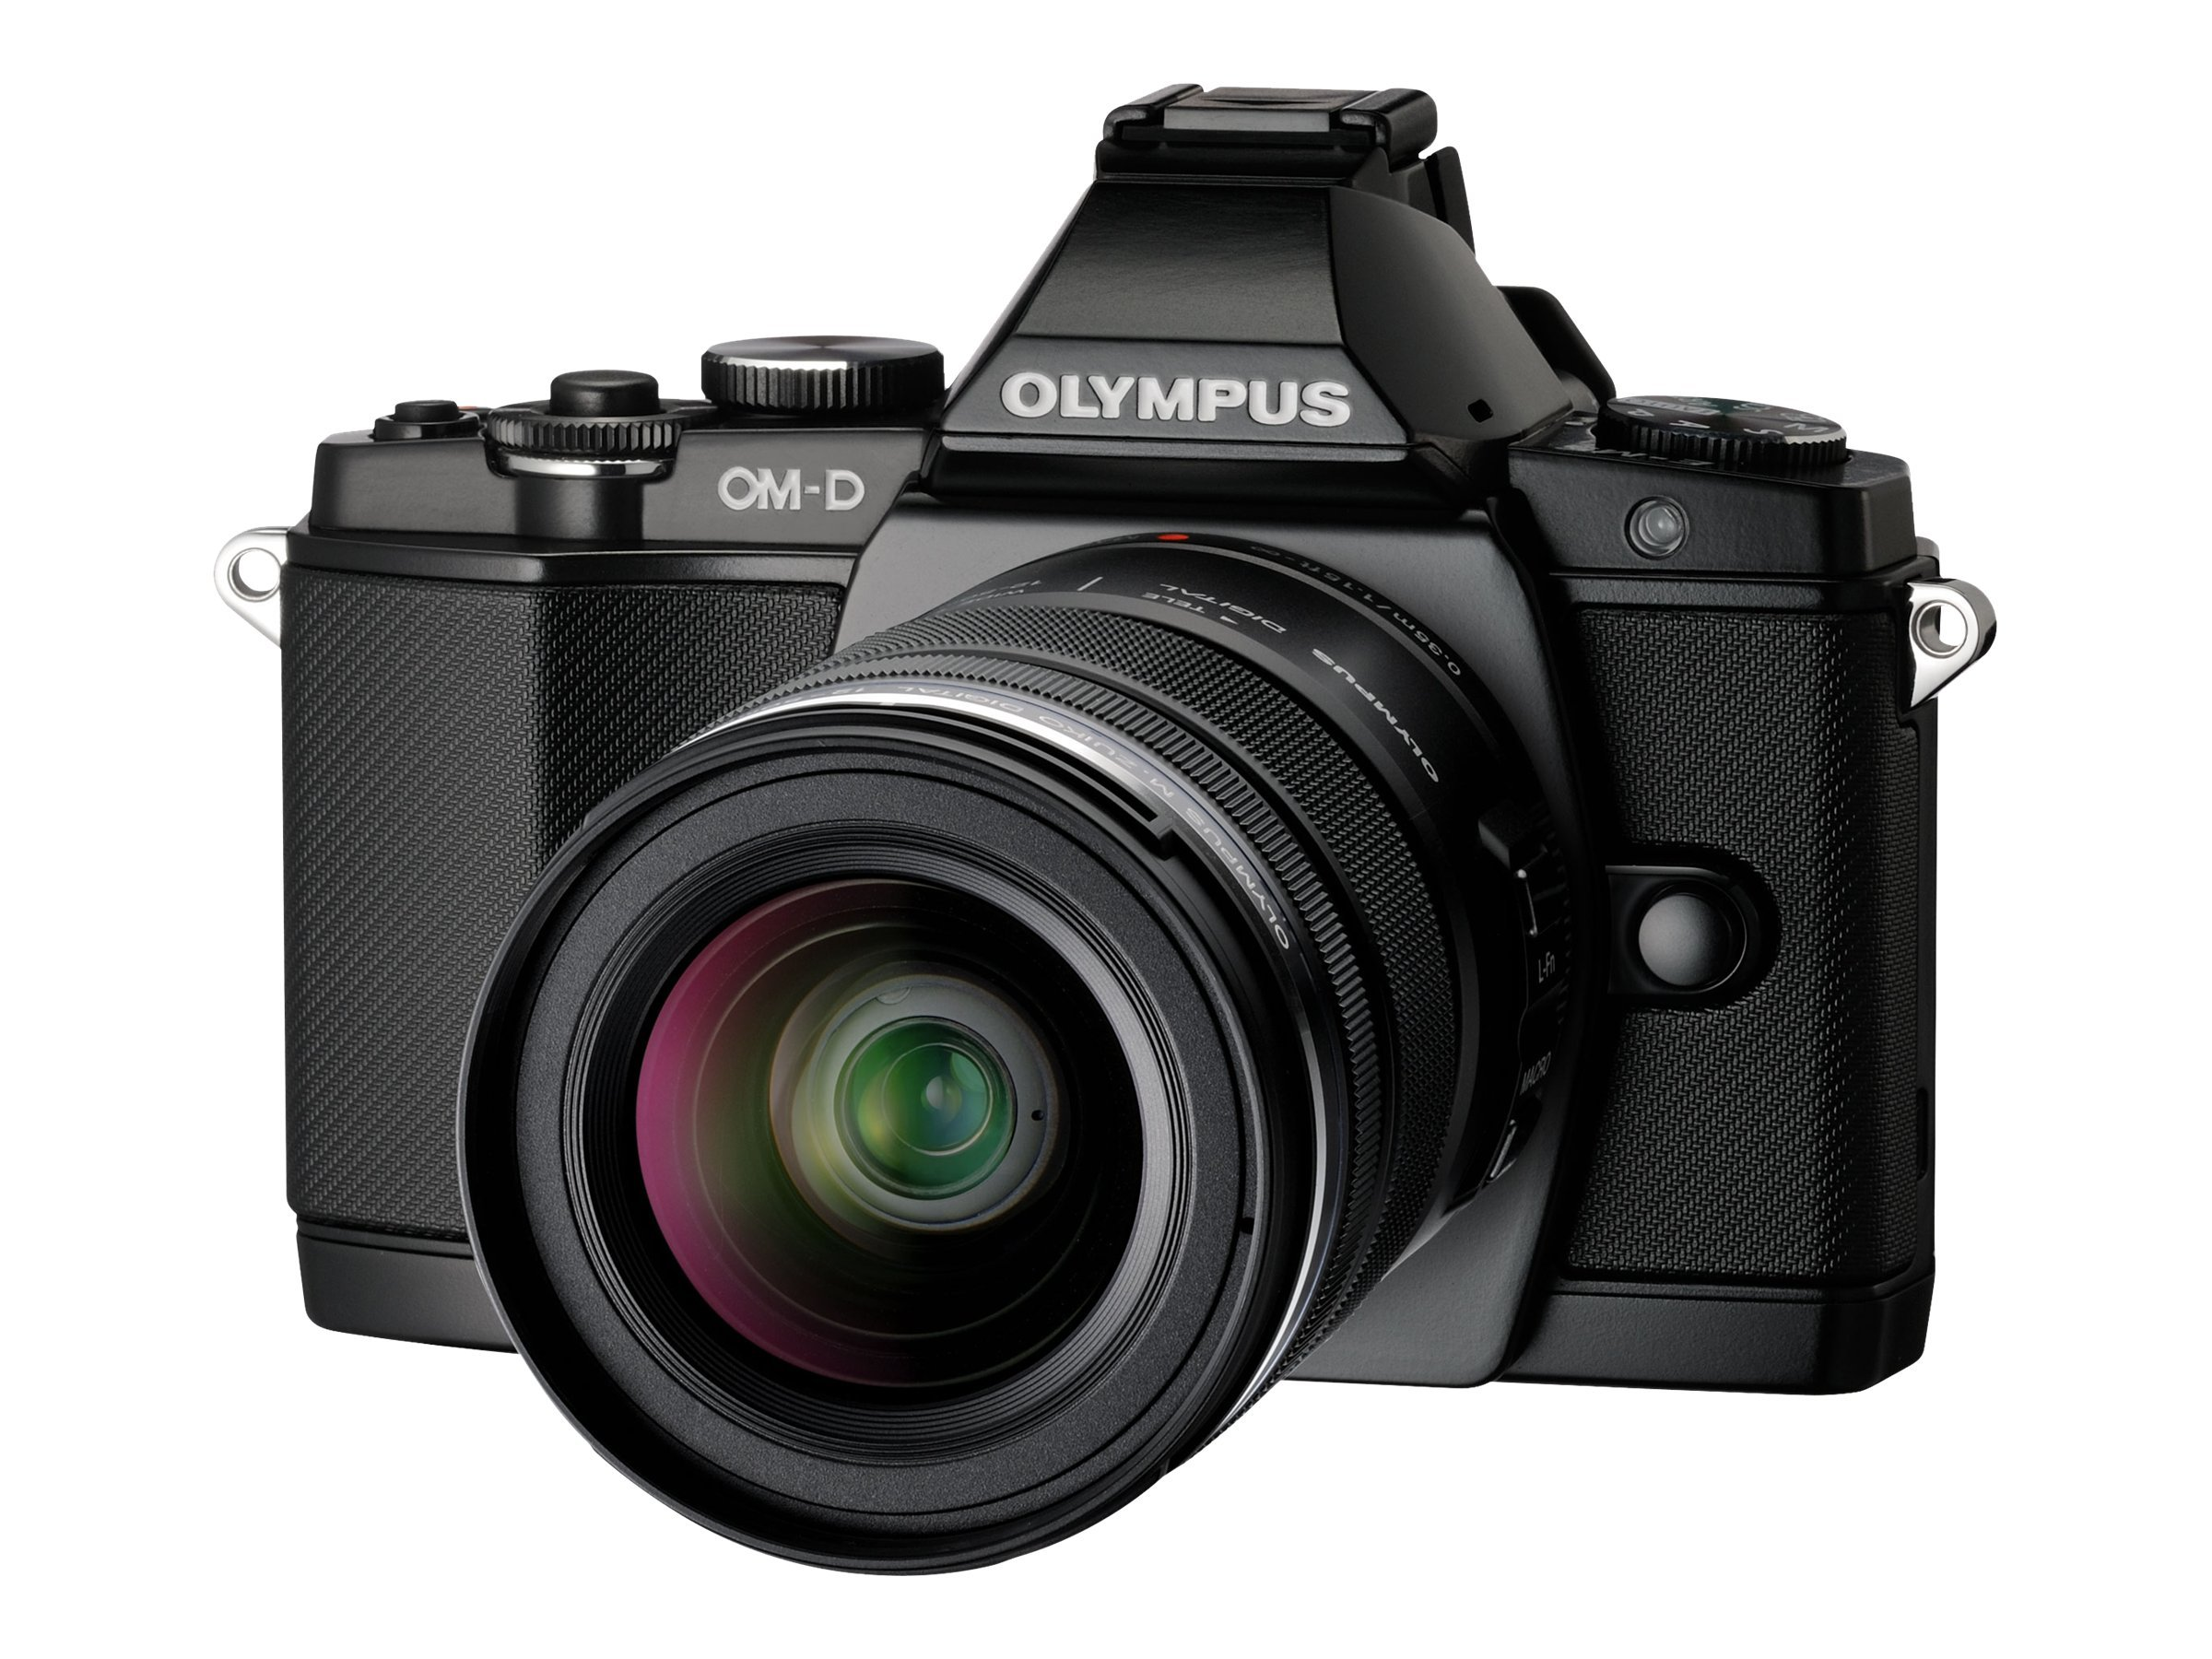 Olympus OM-D E-M5 Micro Four Thirds Digital Camera with 14-42mm Lens, Black, V204041BU000